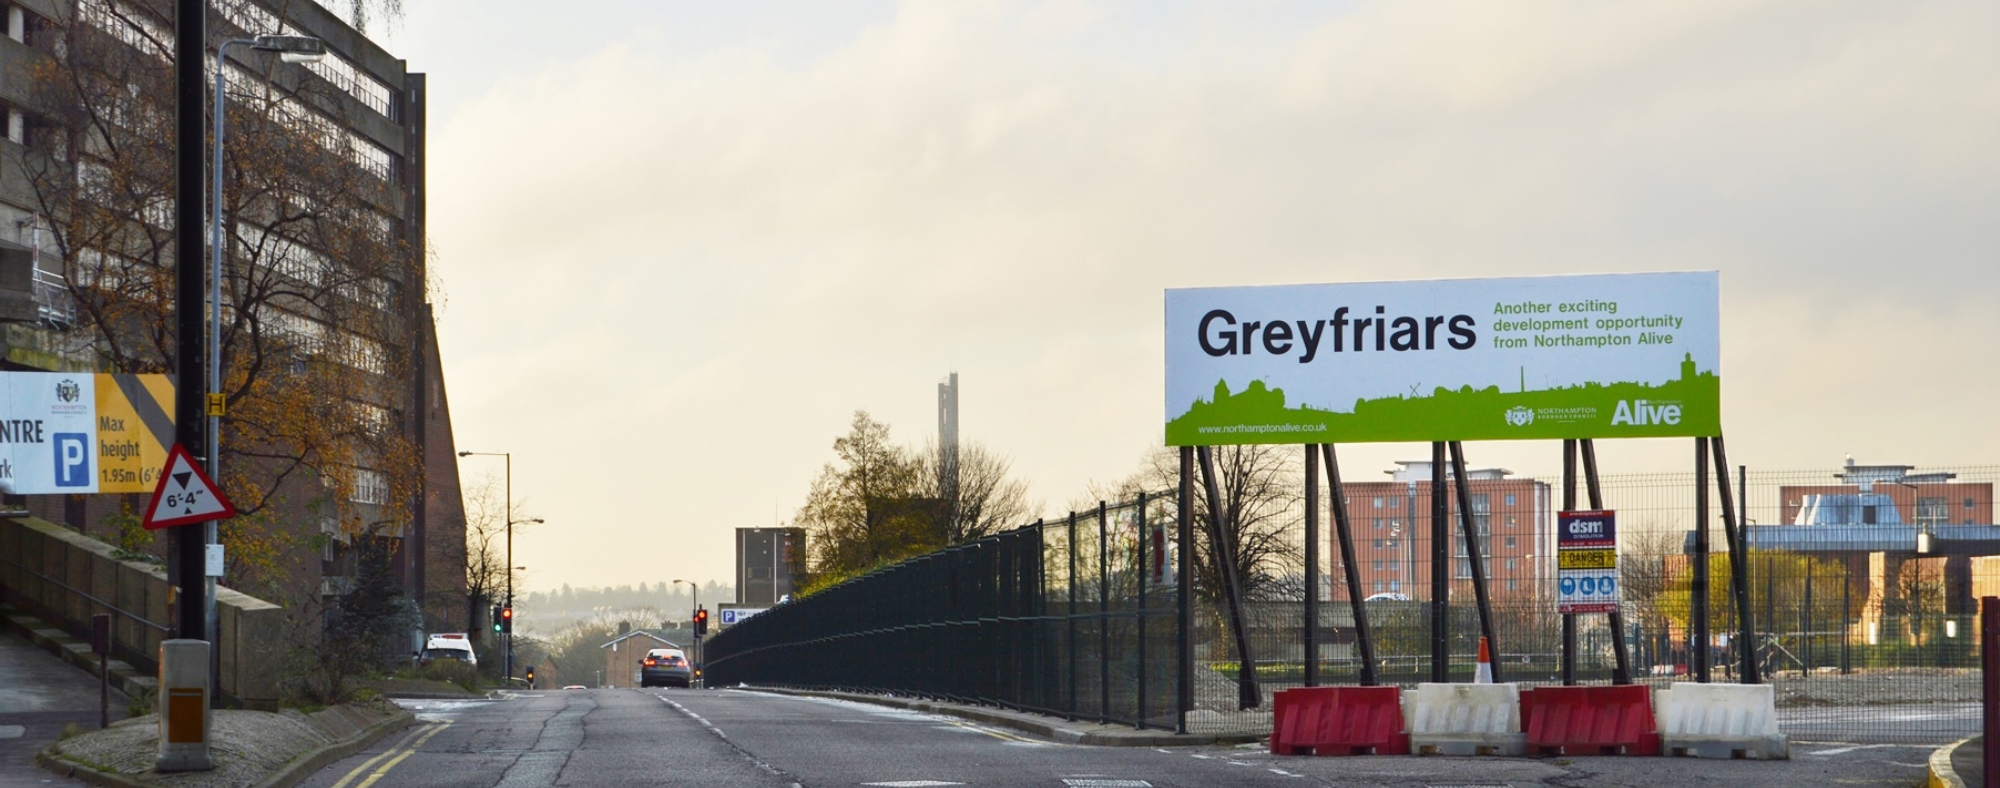 Public display for Greyfriars proposals